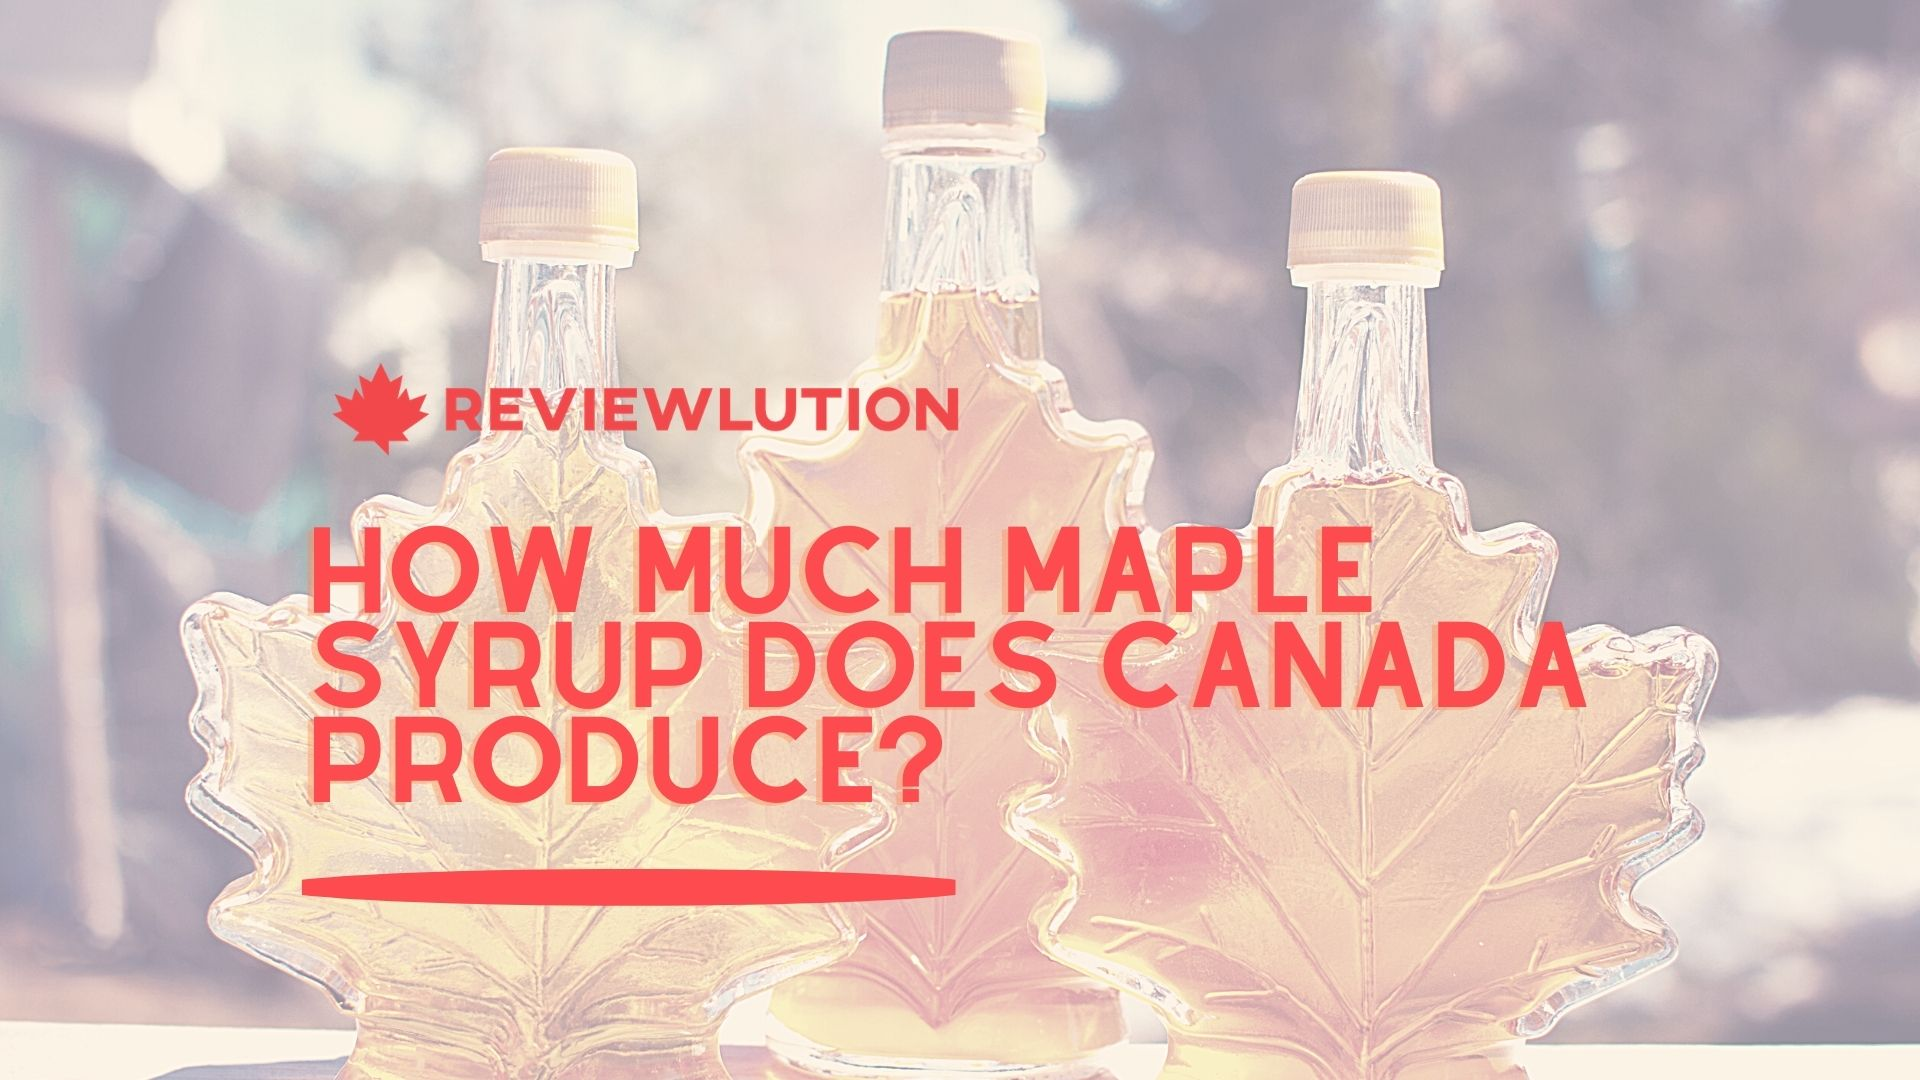 How Much Maple Syrup Does Canada Produce in 2021?